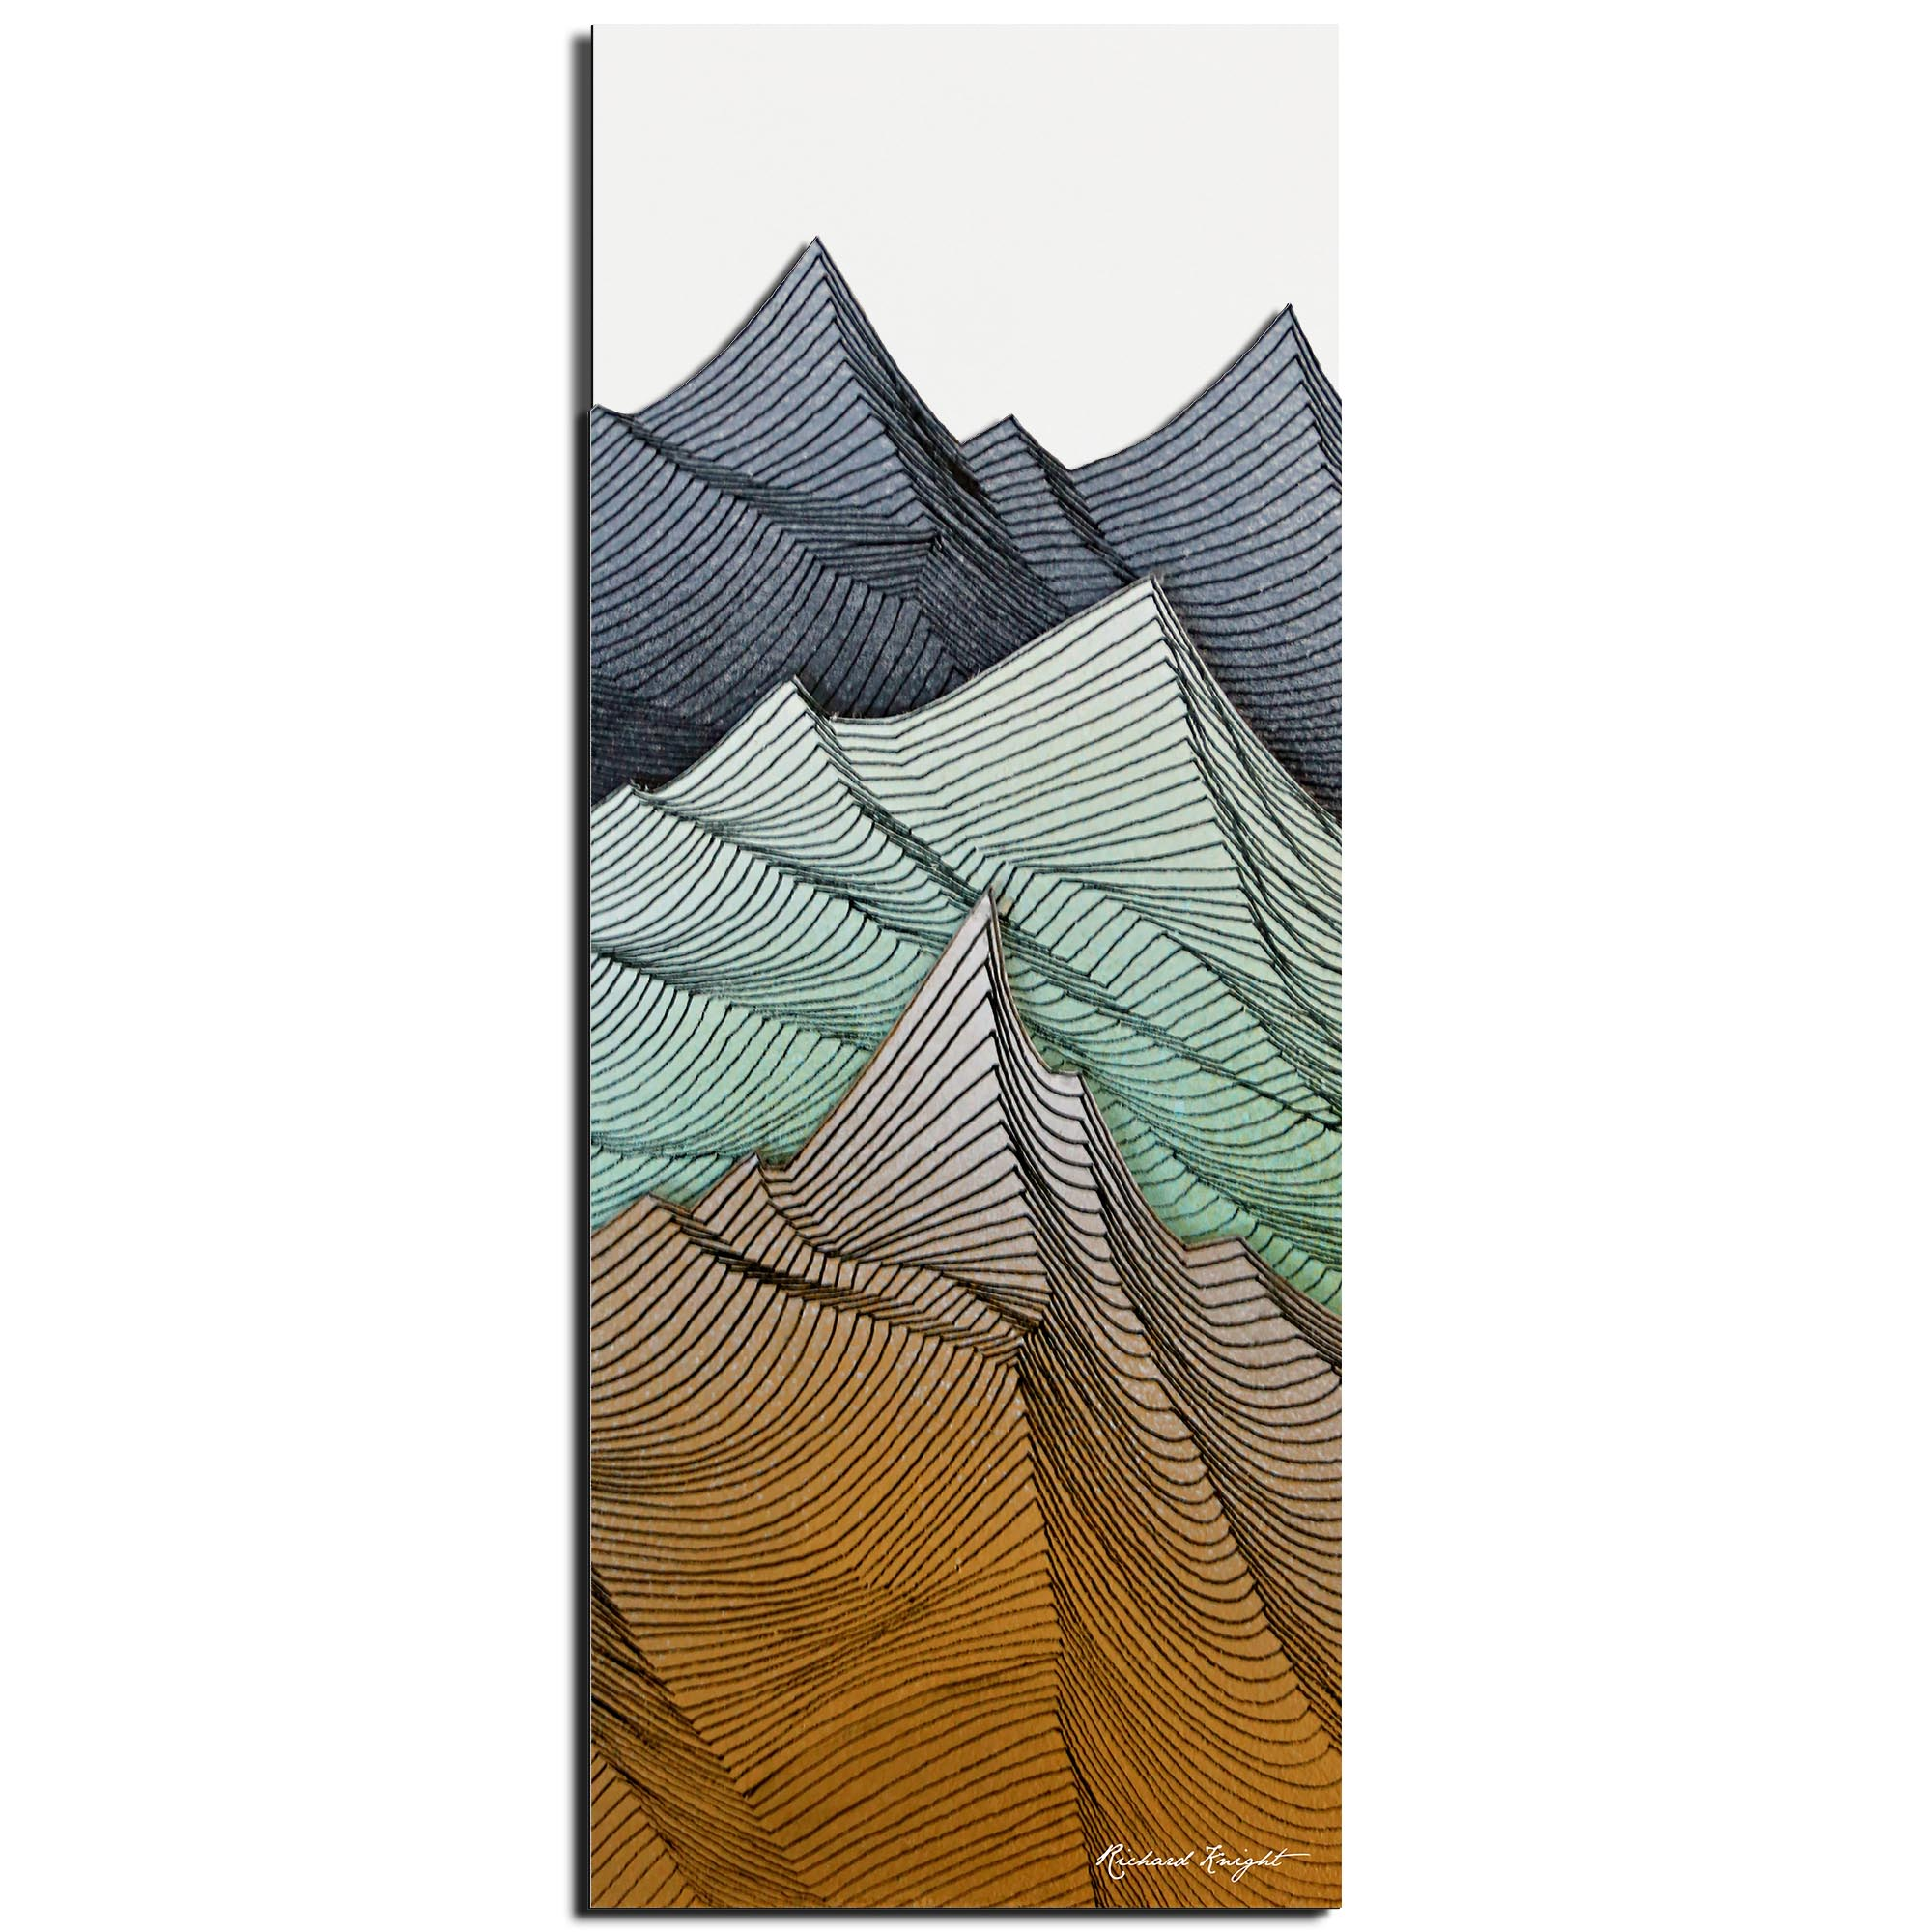 Richard Knight 'Earth Peaks' 19in x 48in Abstract Landscape Art on Polymetal